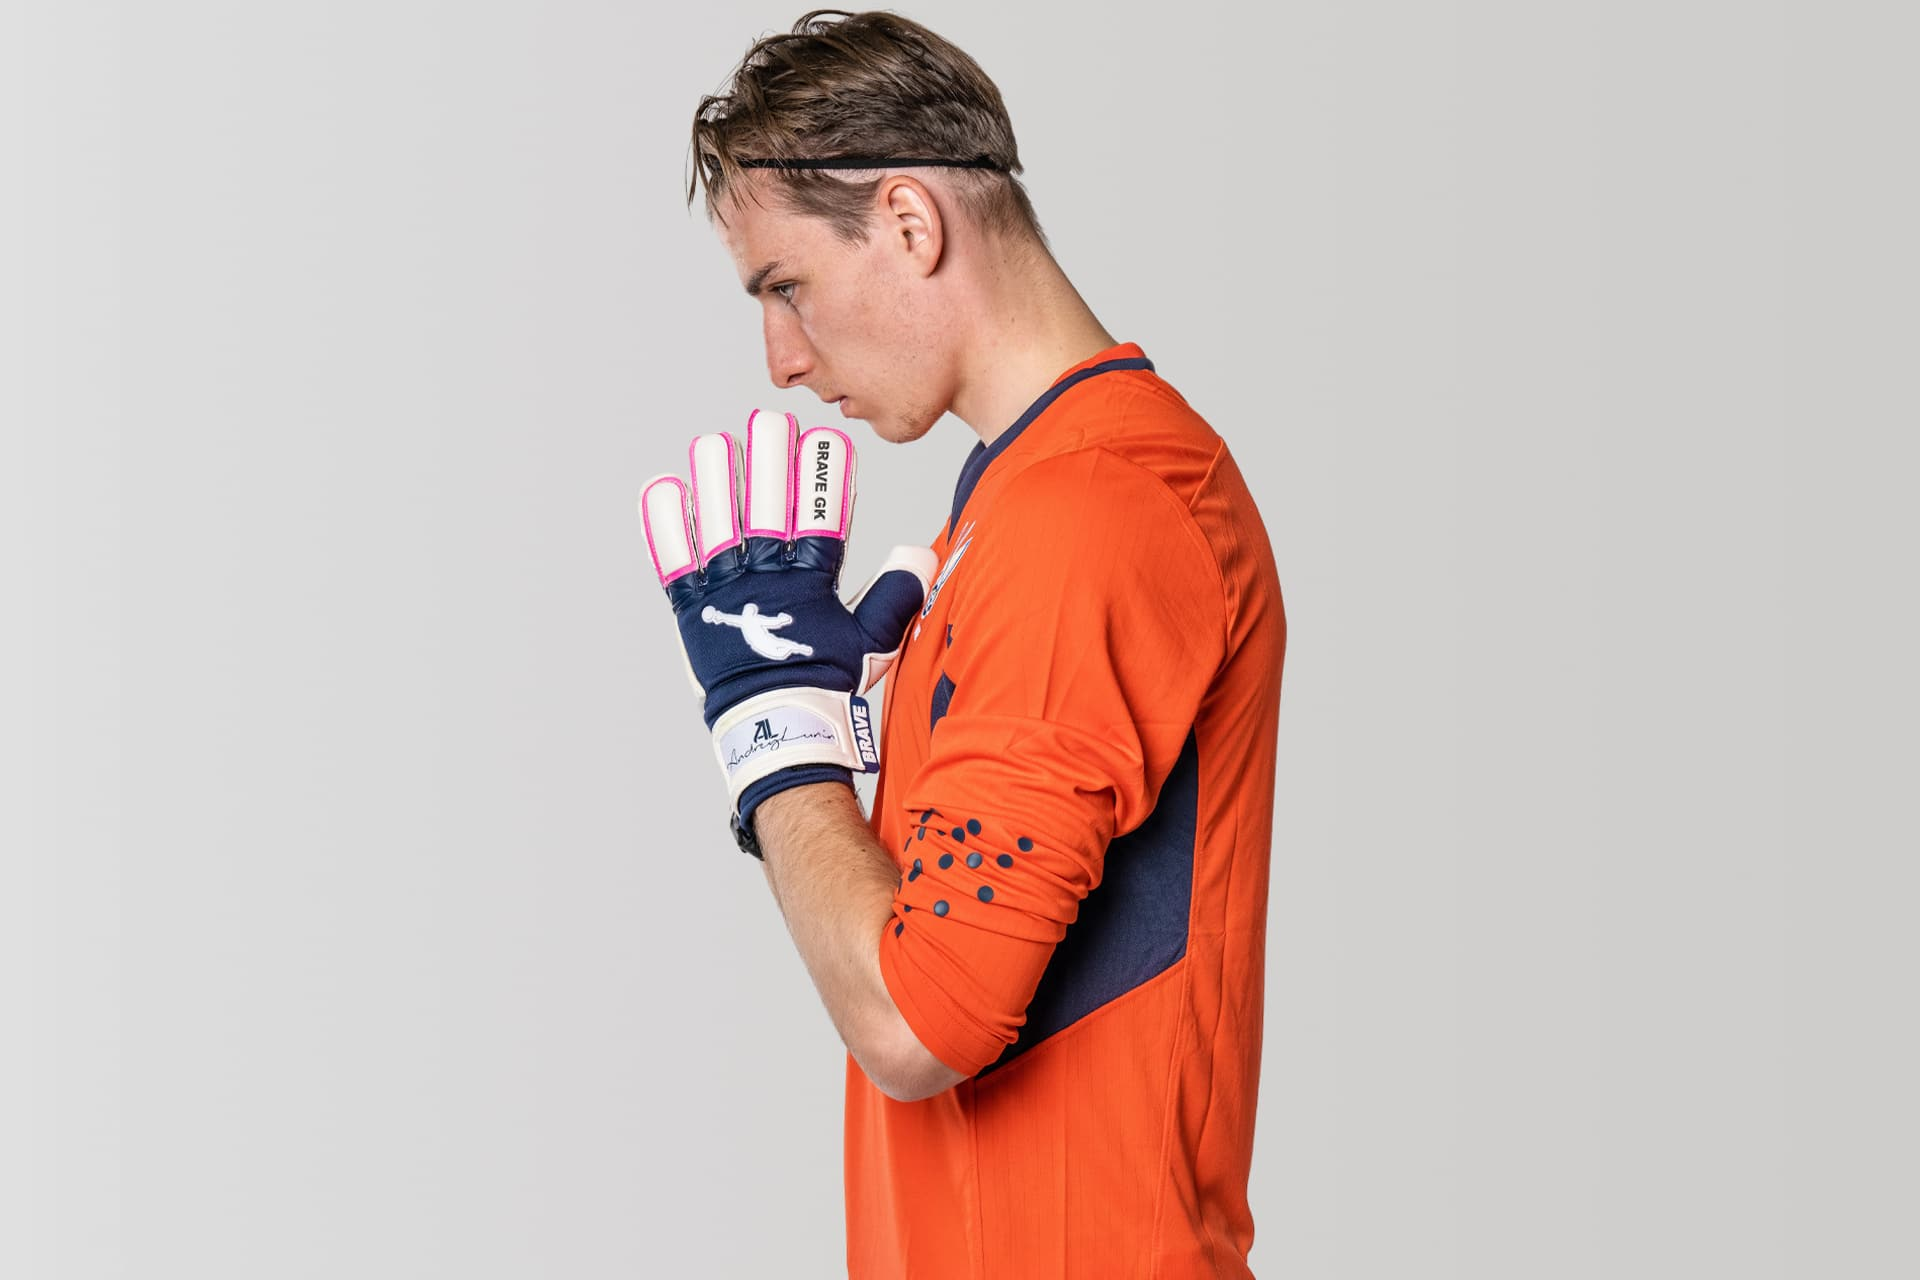 Andrii Lunin plays in the gloves of Brave GK Unique - shop Brave GK